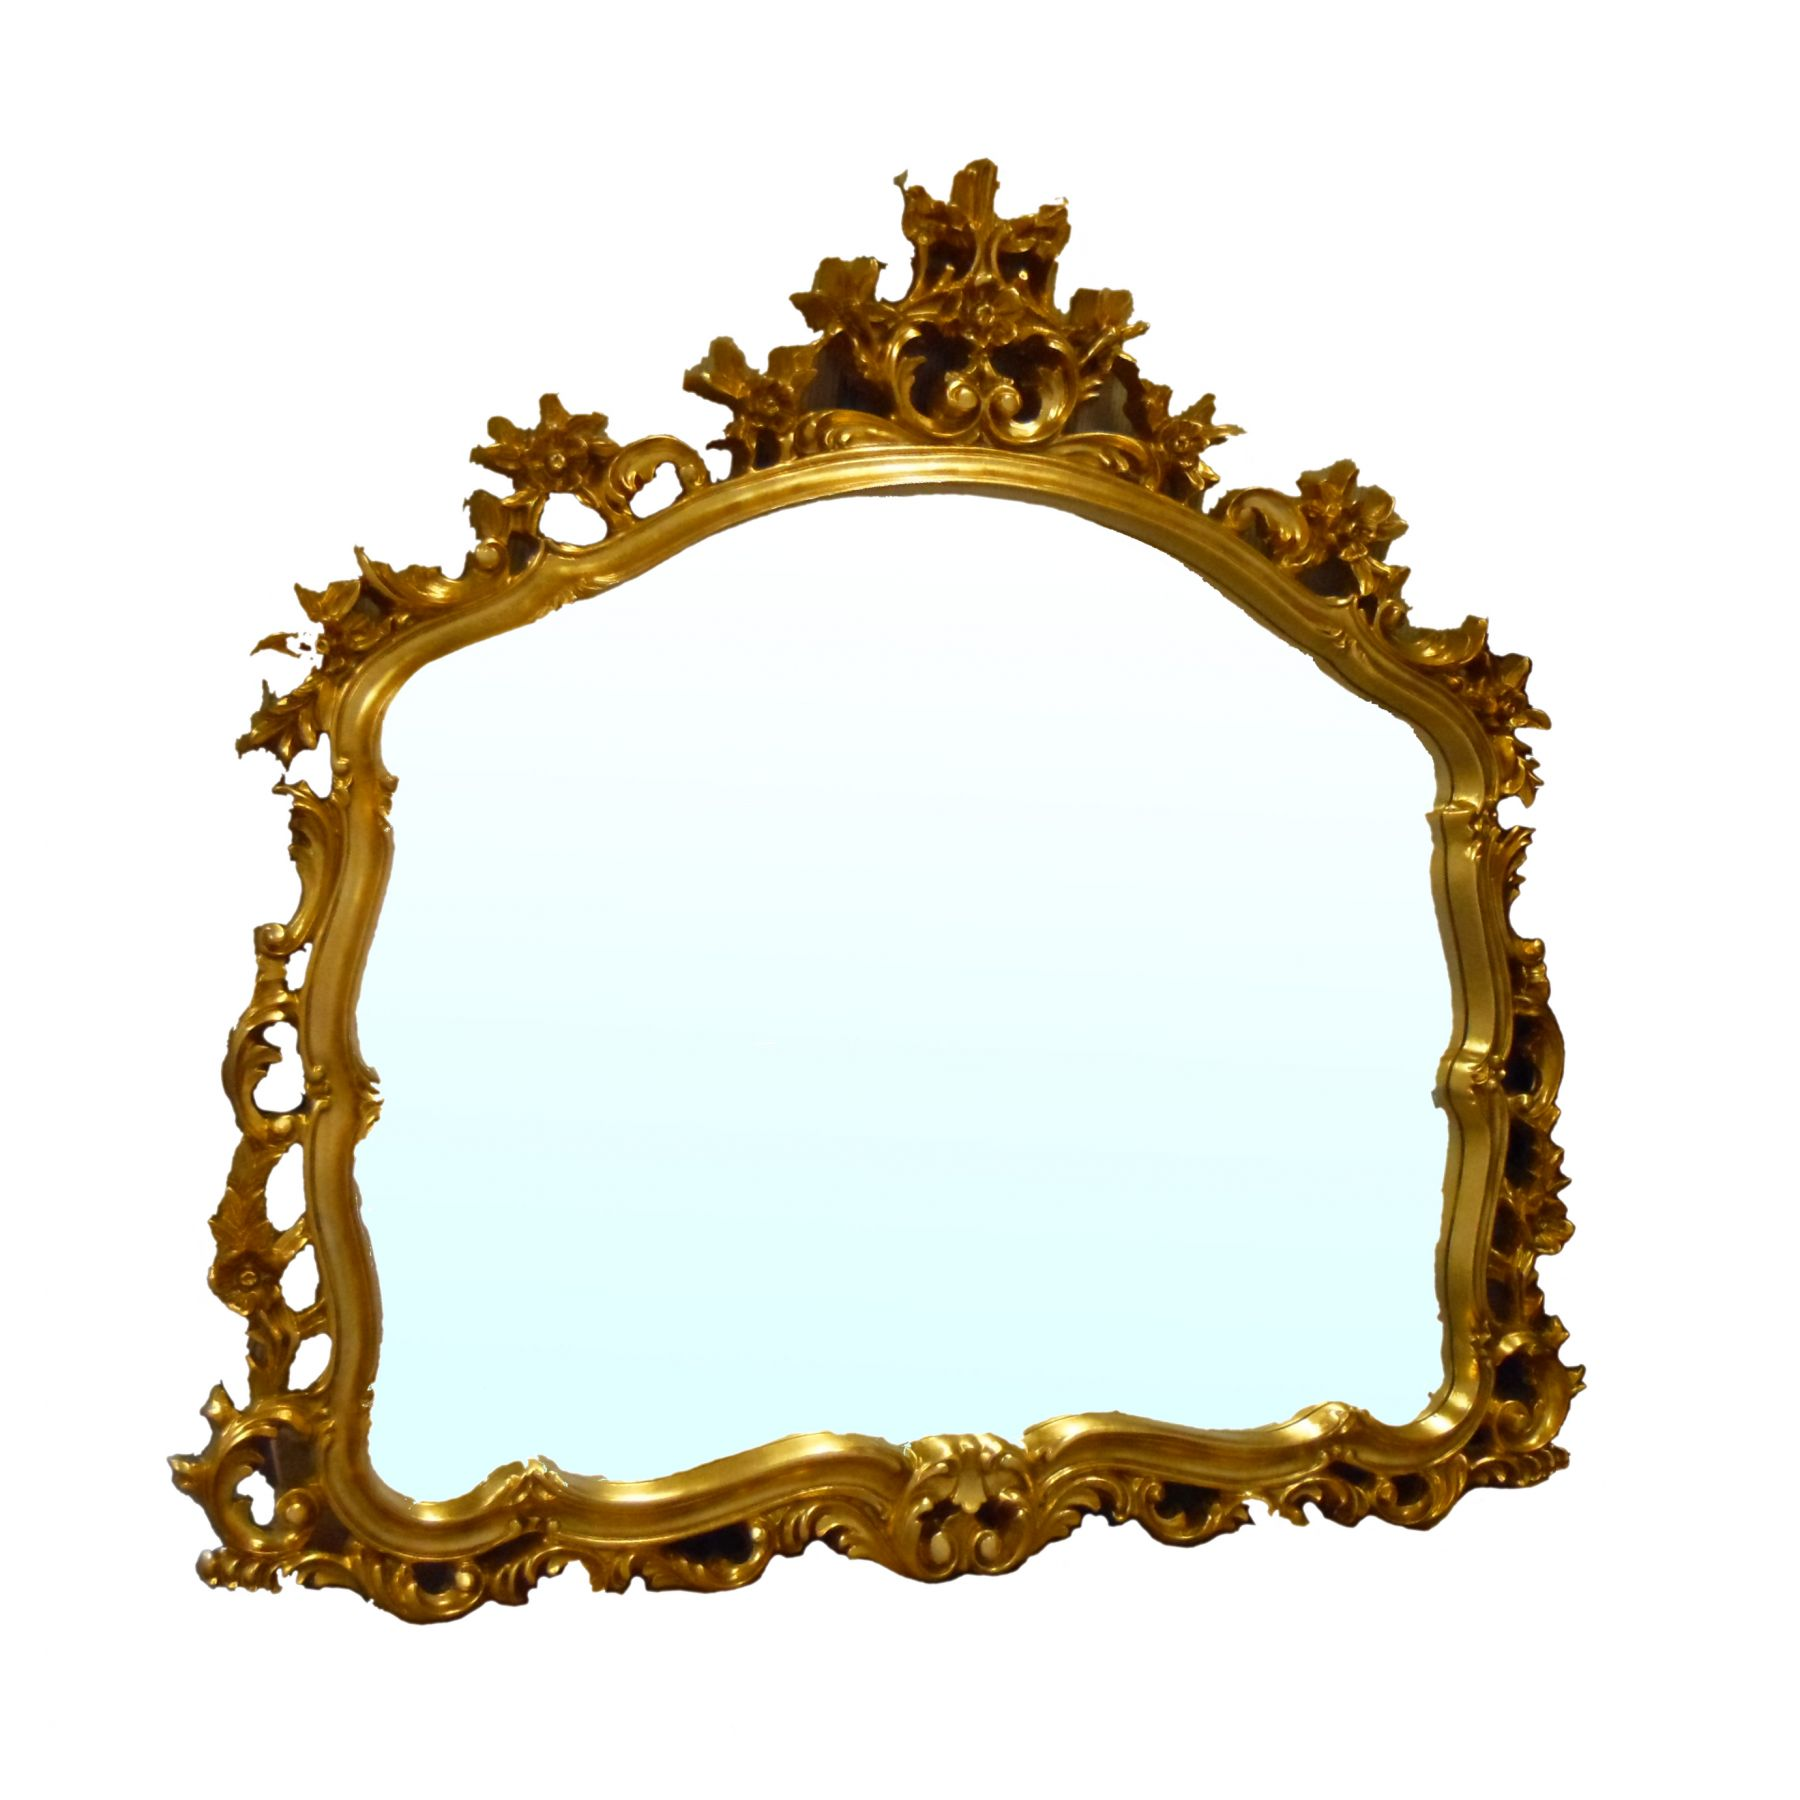 Buy Ornate Gold Framed Mirror | Clipart Panda - Free Clipart Images